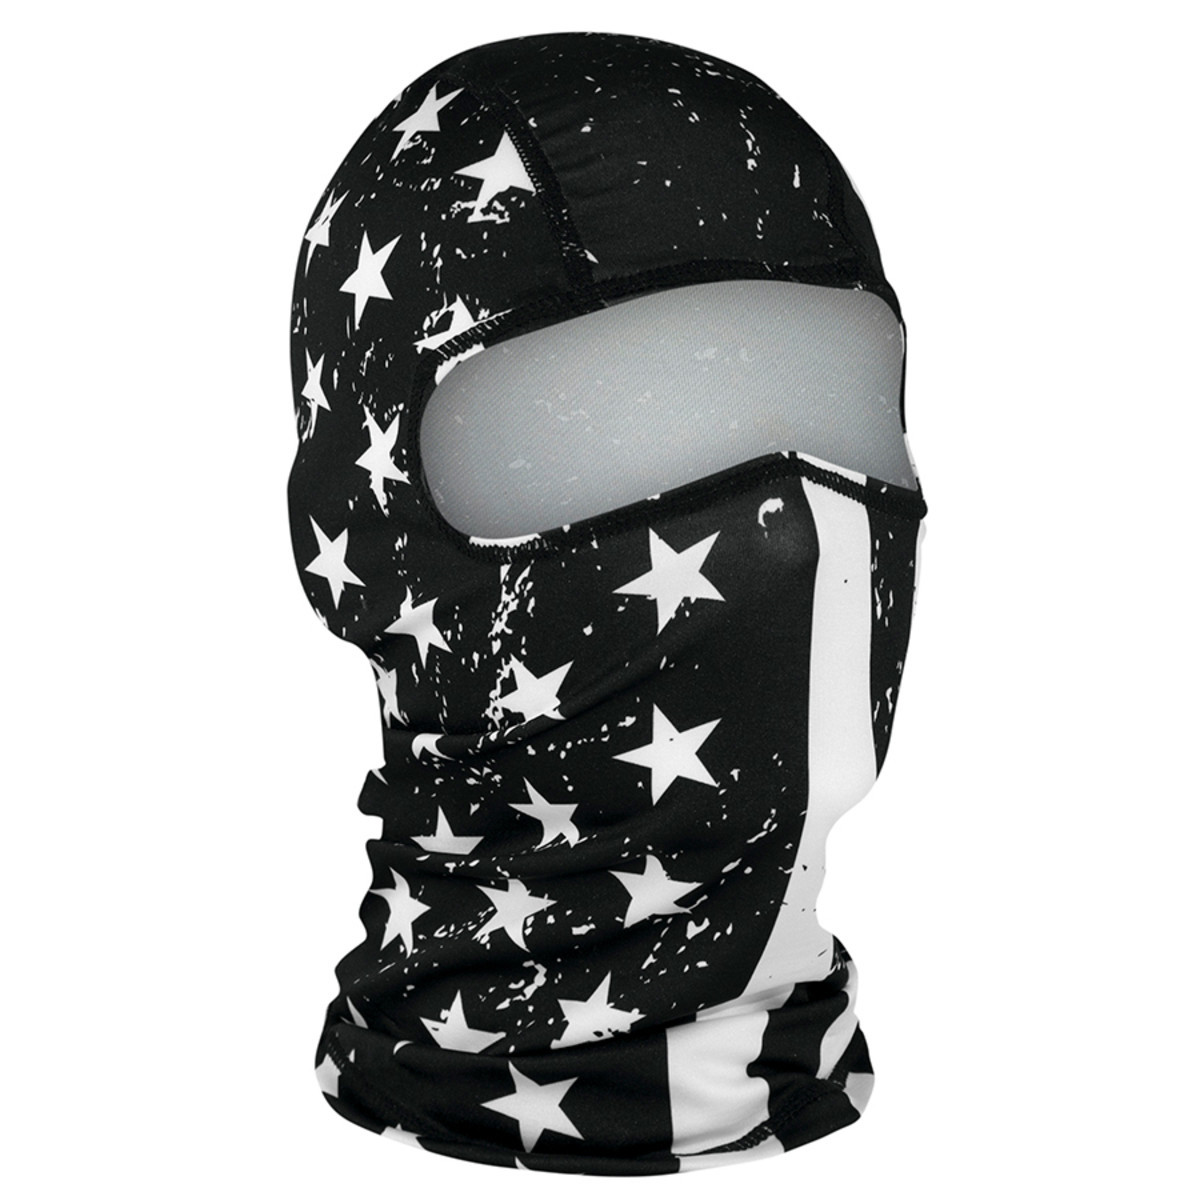 34bf1bed310 ZANheadgear WBP091 Black and White Flag Polyester Balaclava. Price   9.35.  Image 1